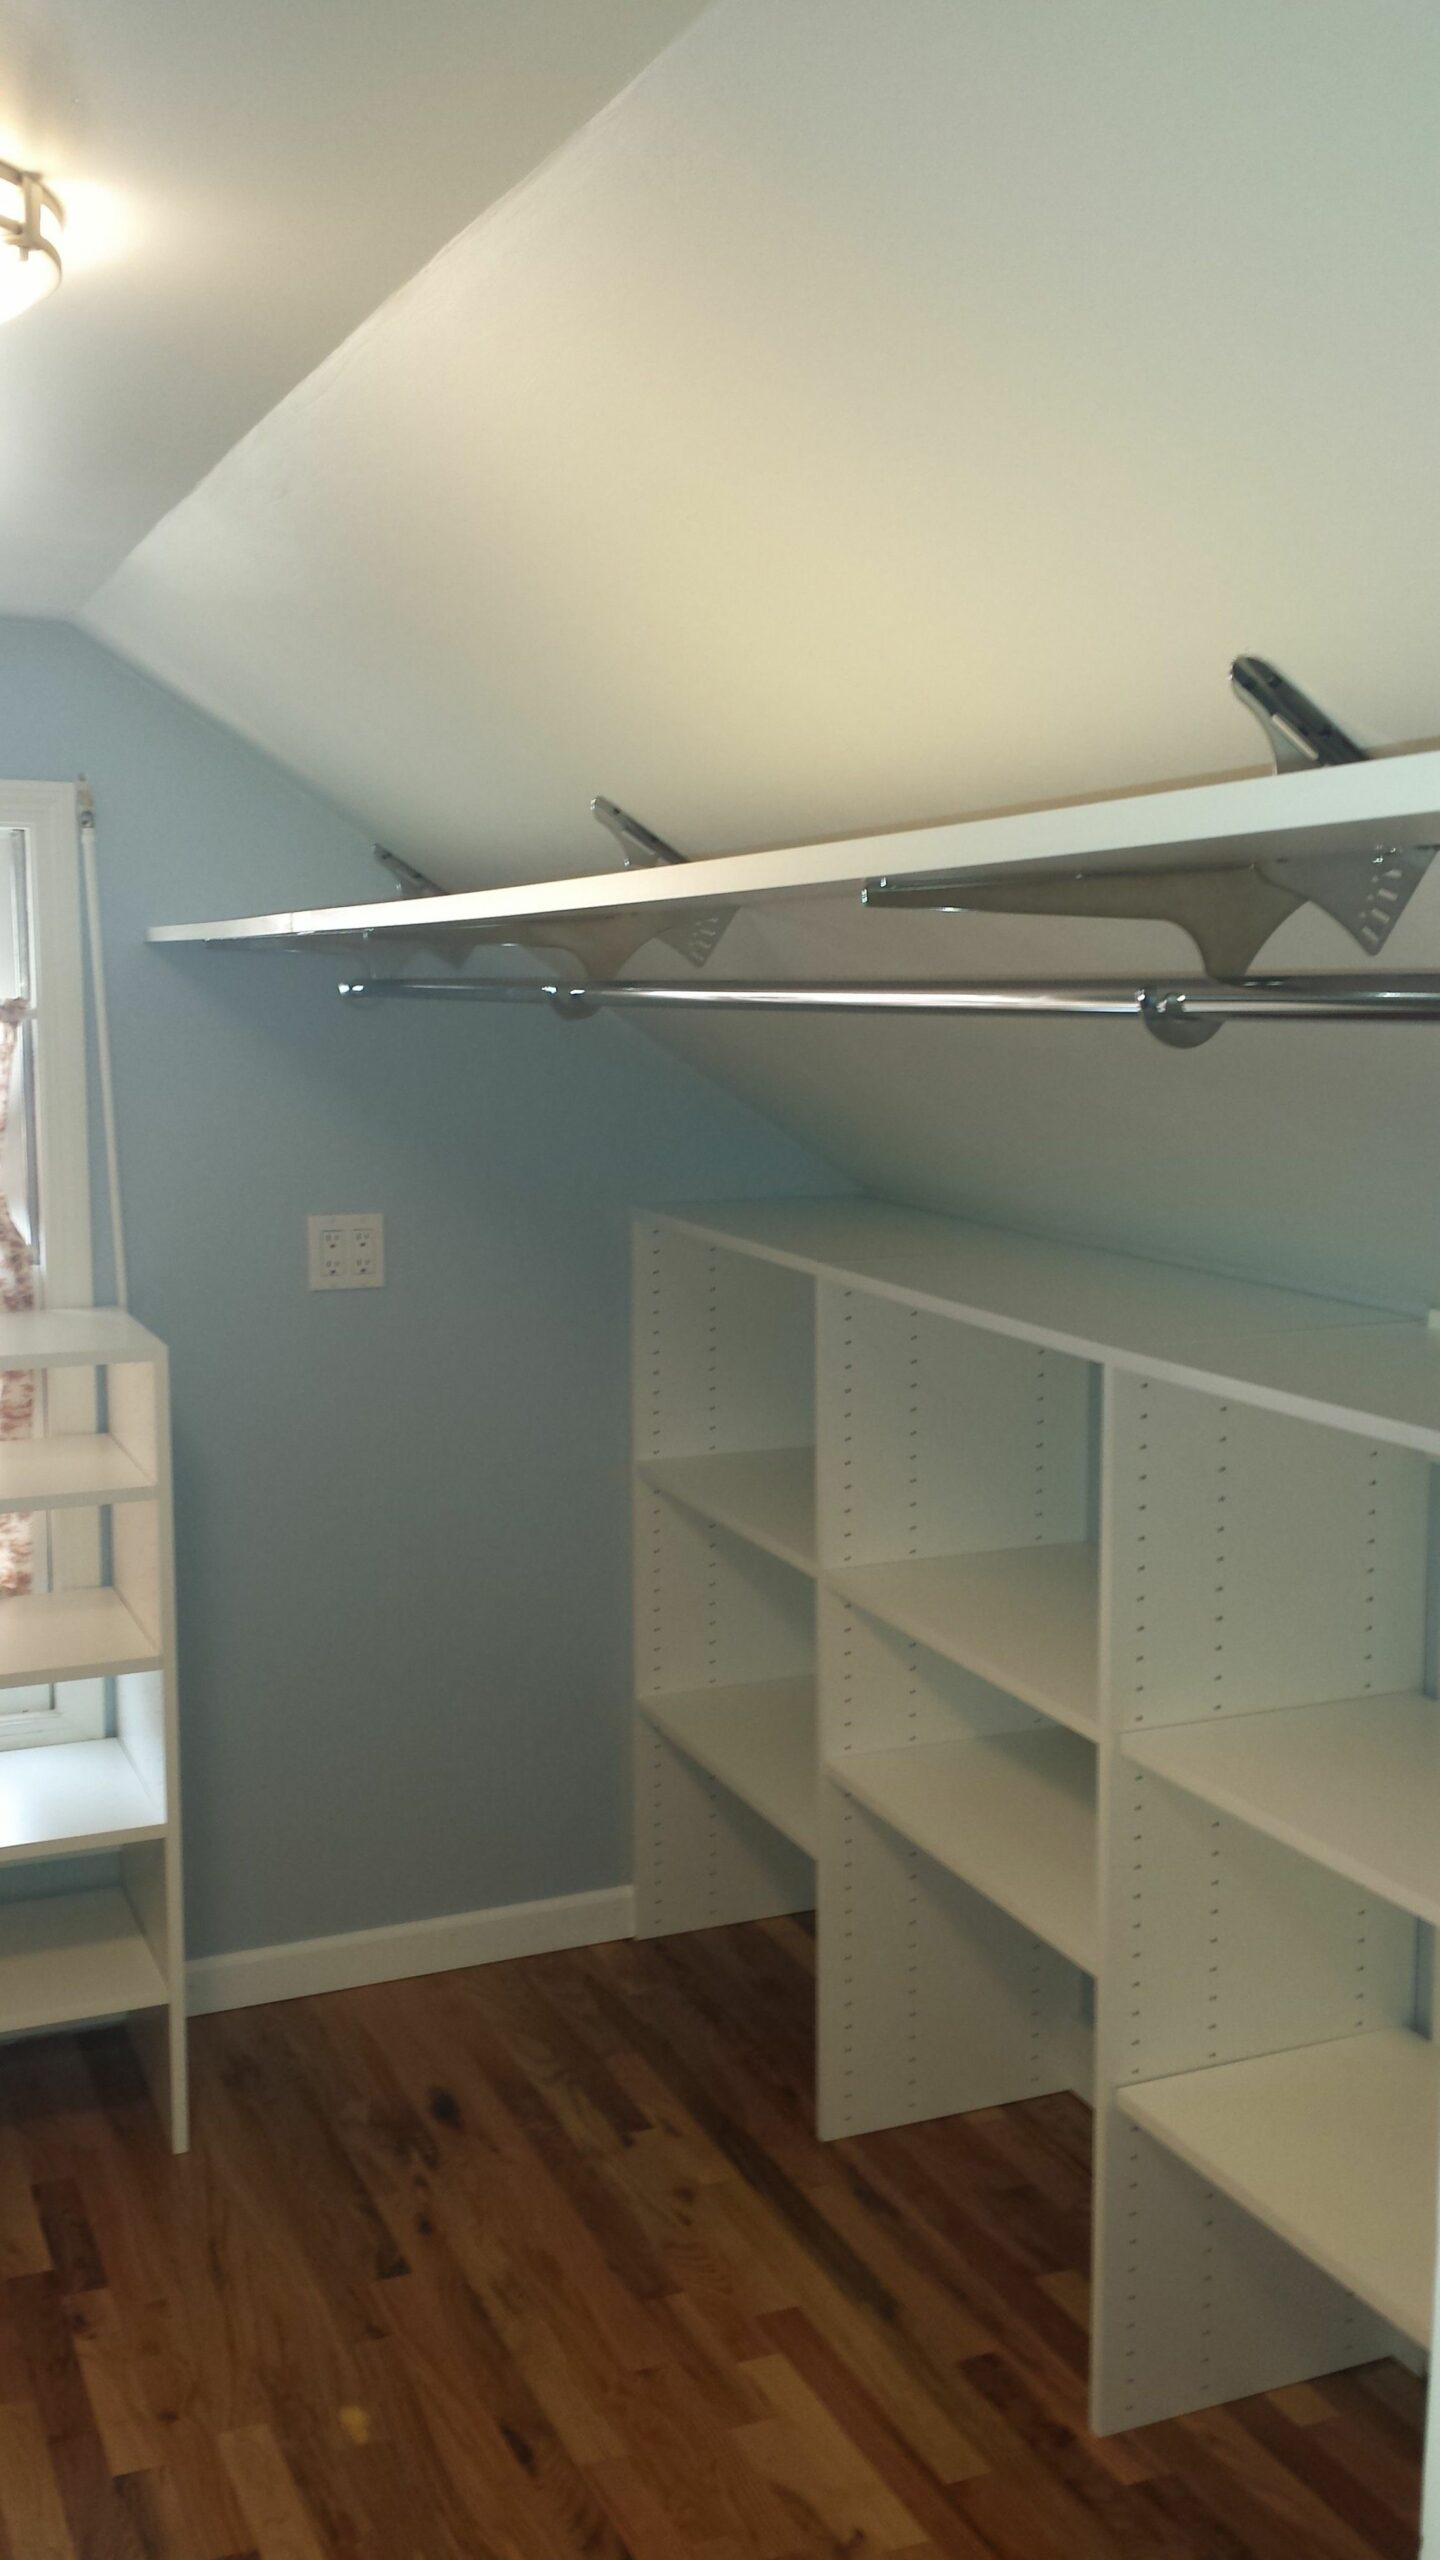 Angled brackets used to maximize space in attic closet. (With ..